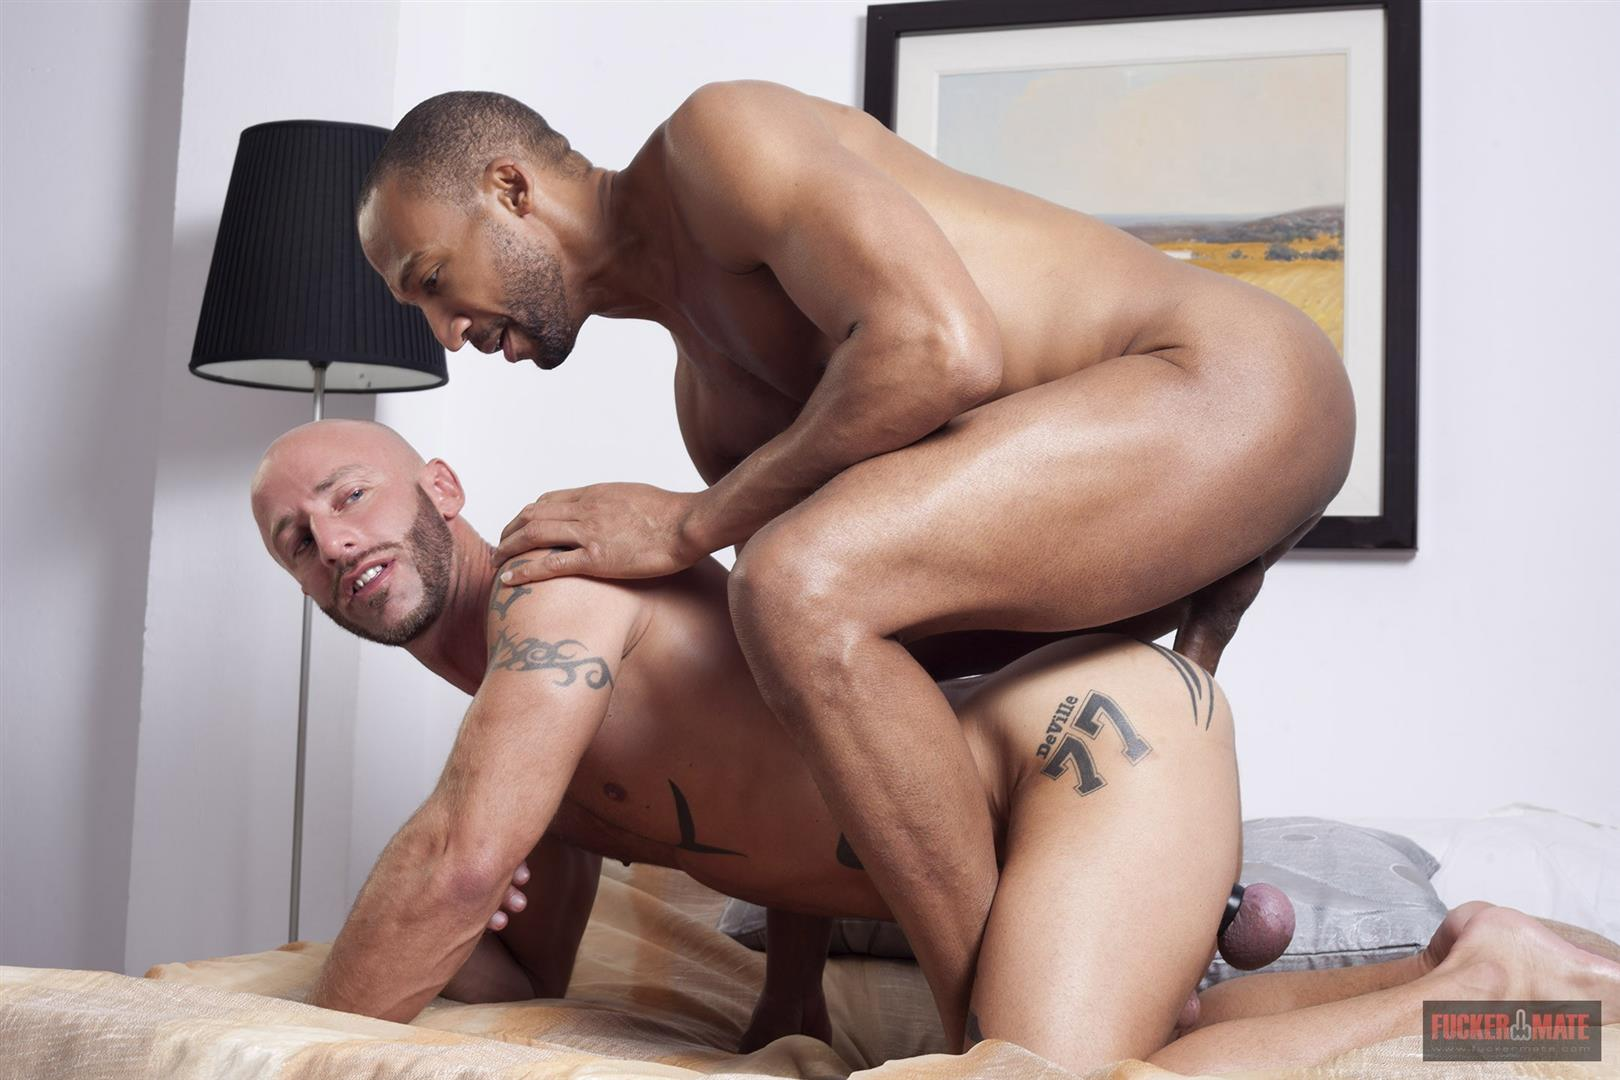 GAN BANG GAY INTERRACIAL PORNO